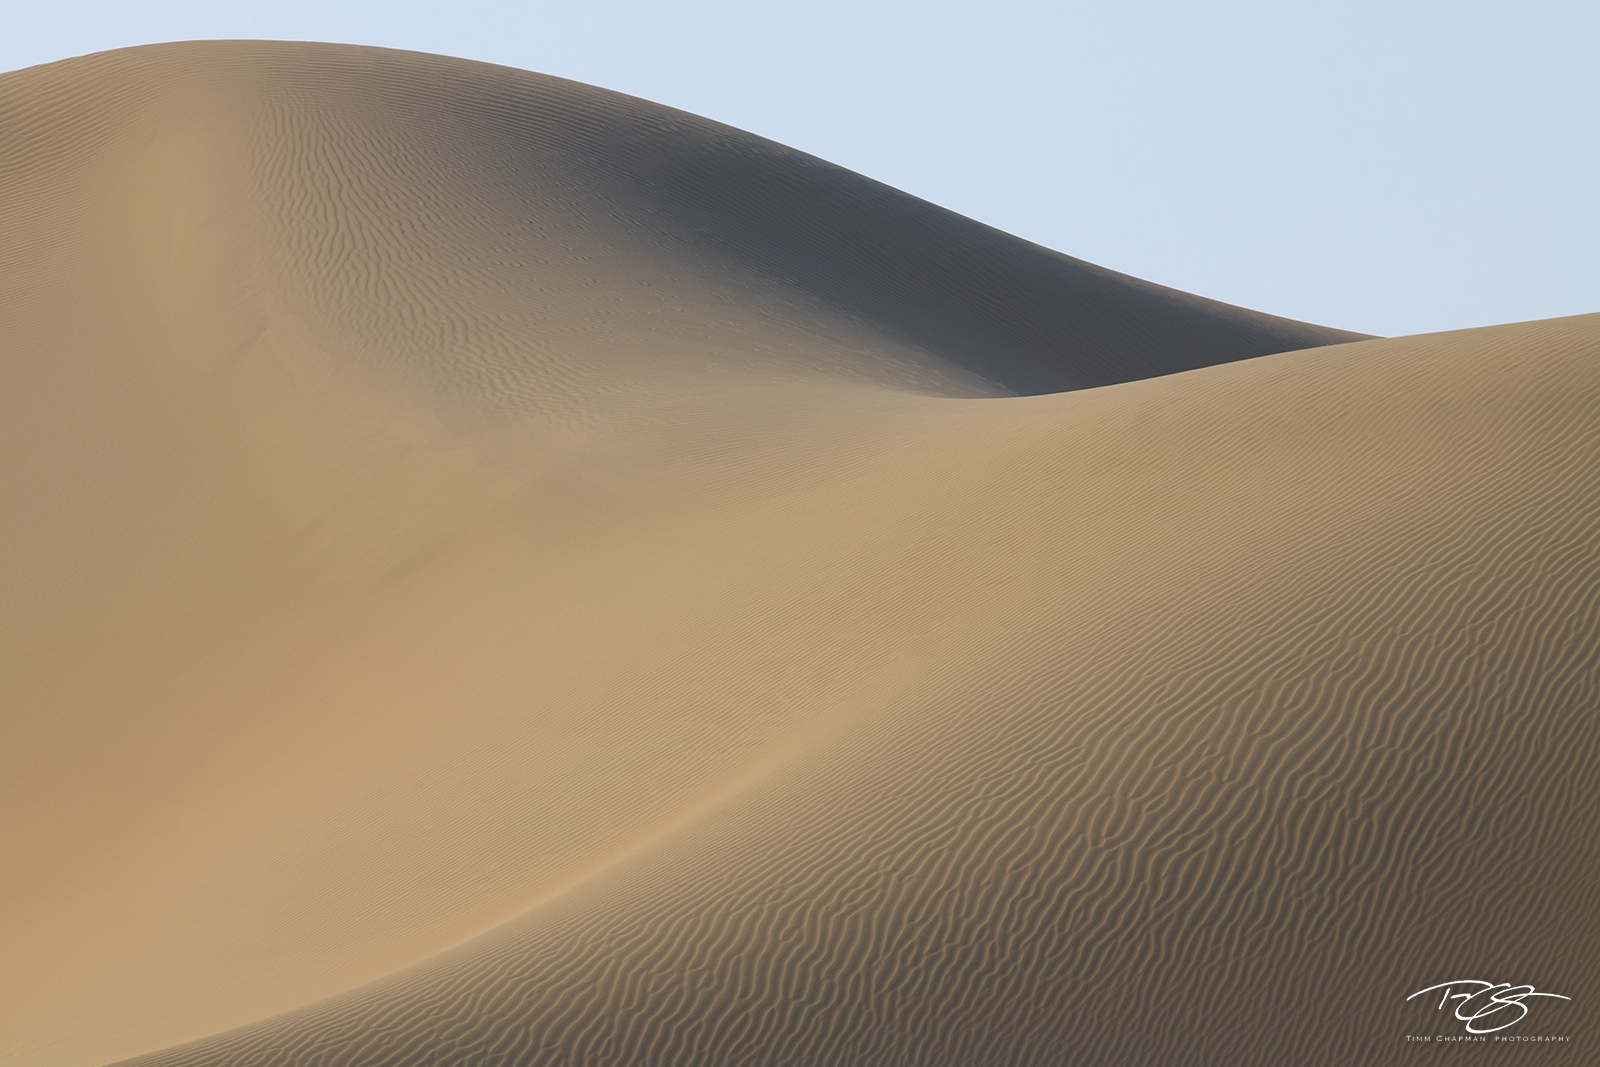 gobi desert, china, abstract, patterns, sand dune, sand, dune, desert, sensual sand, photo